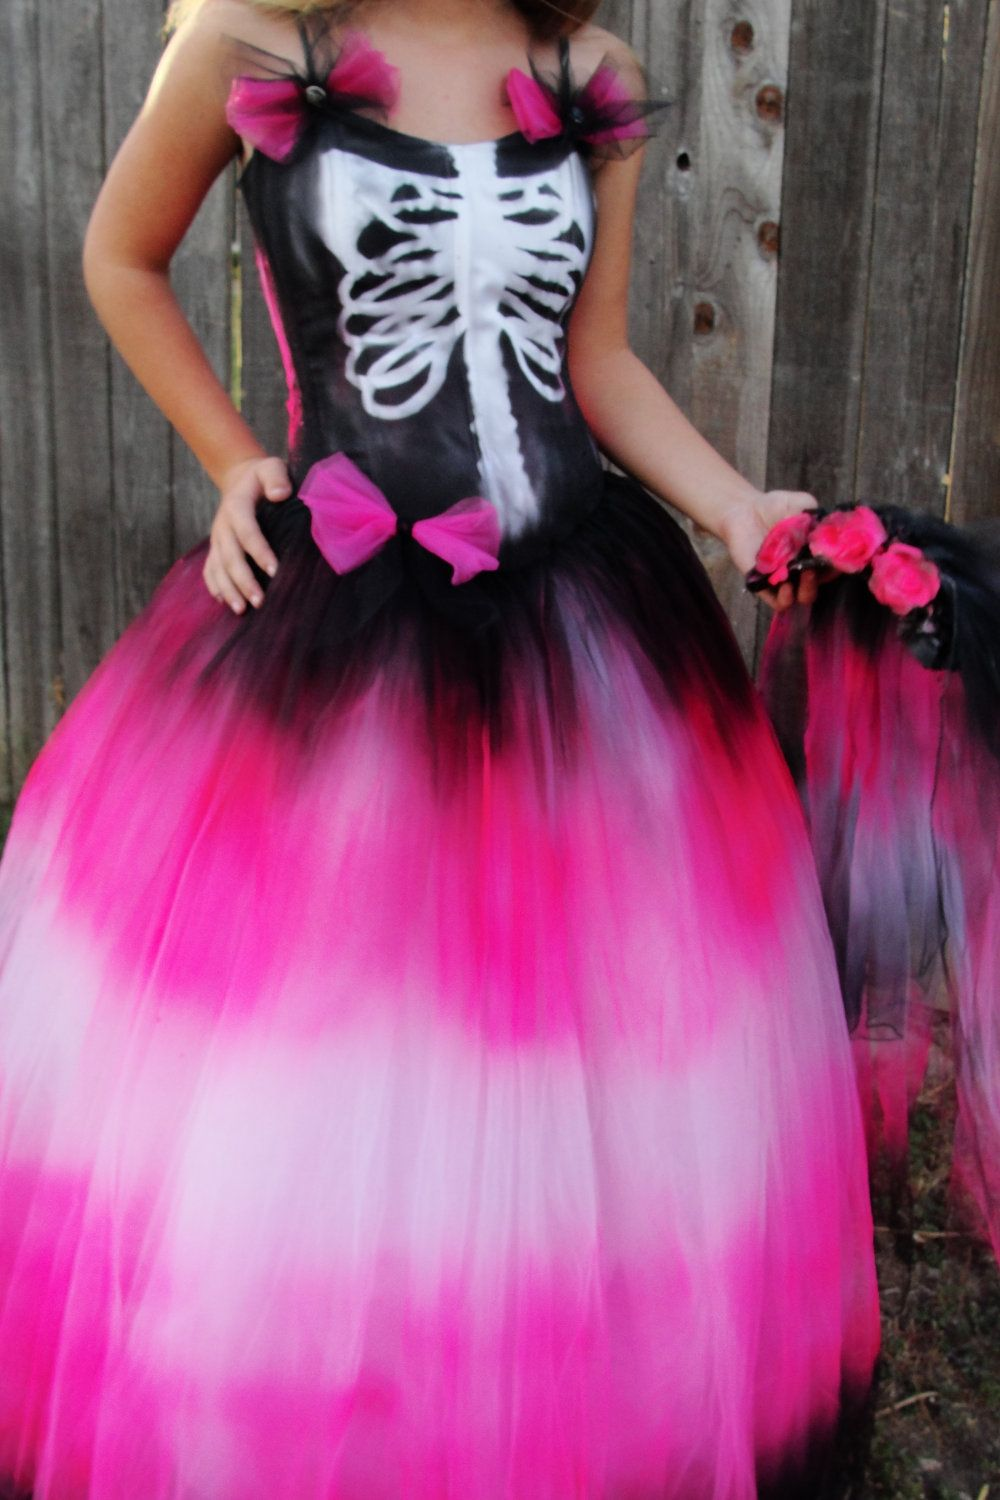 Black hot pink skeleton day of the dead halloween costume with ...